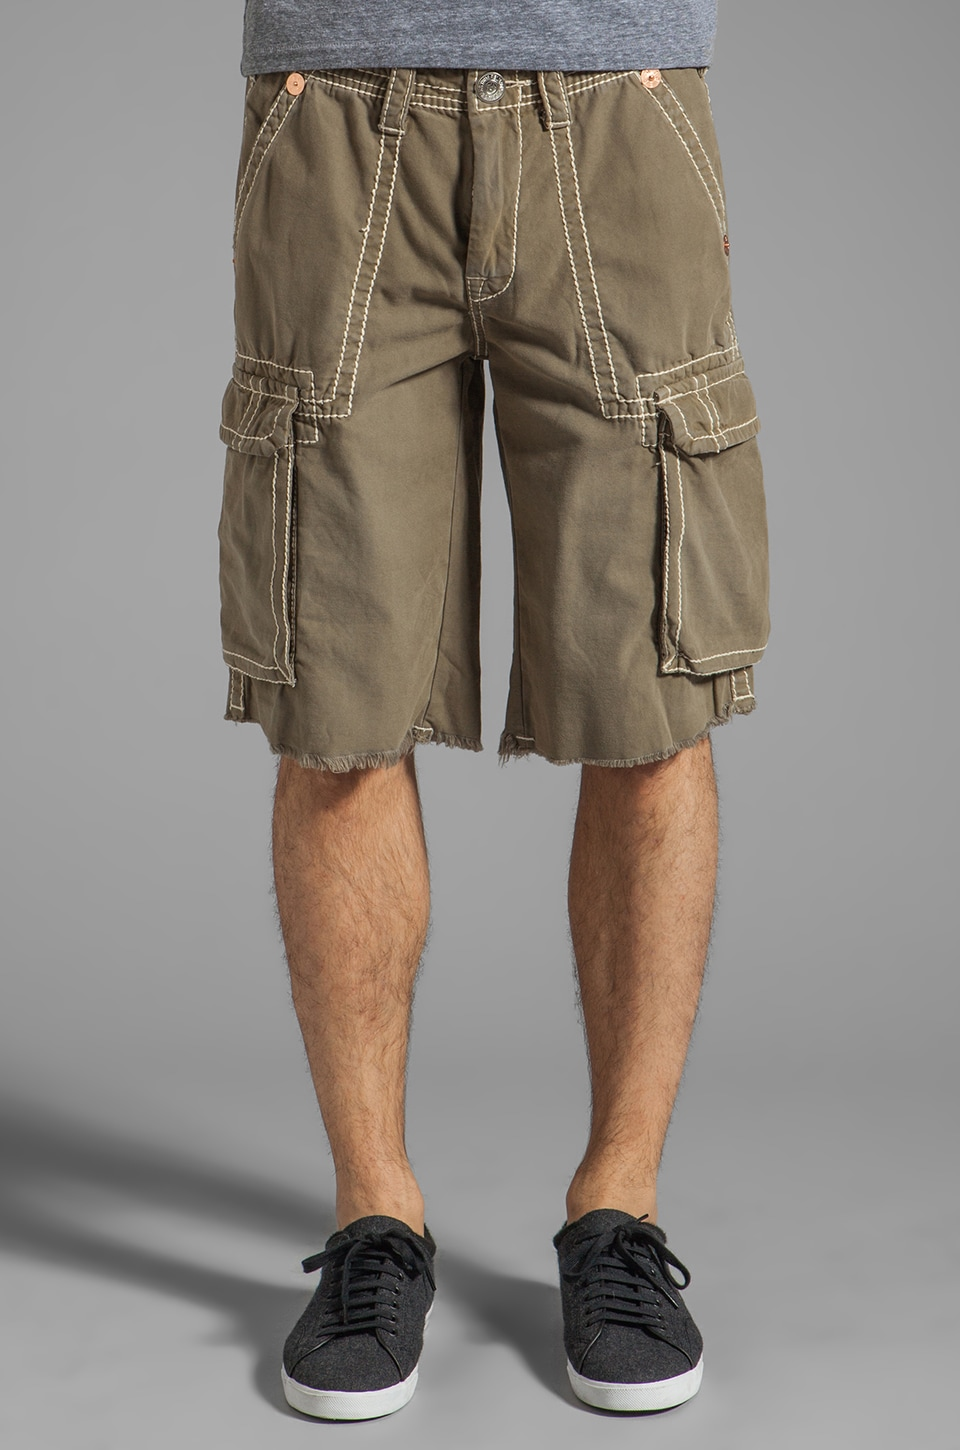 True Religion Issac Big T Cargo Shorts in Old Sage